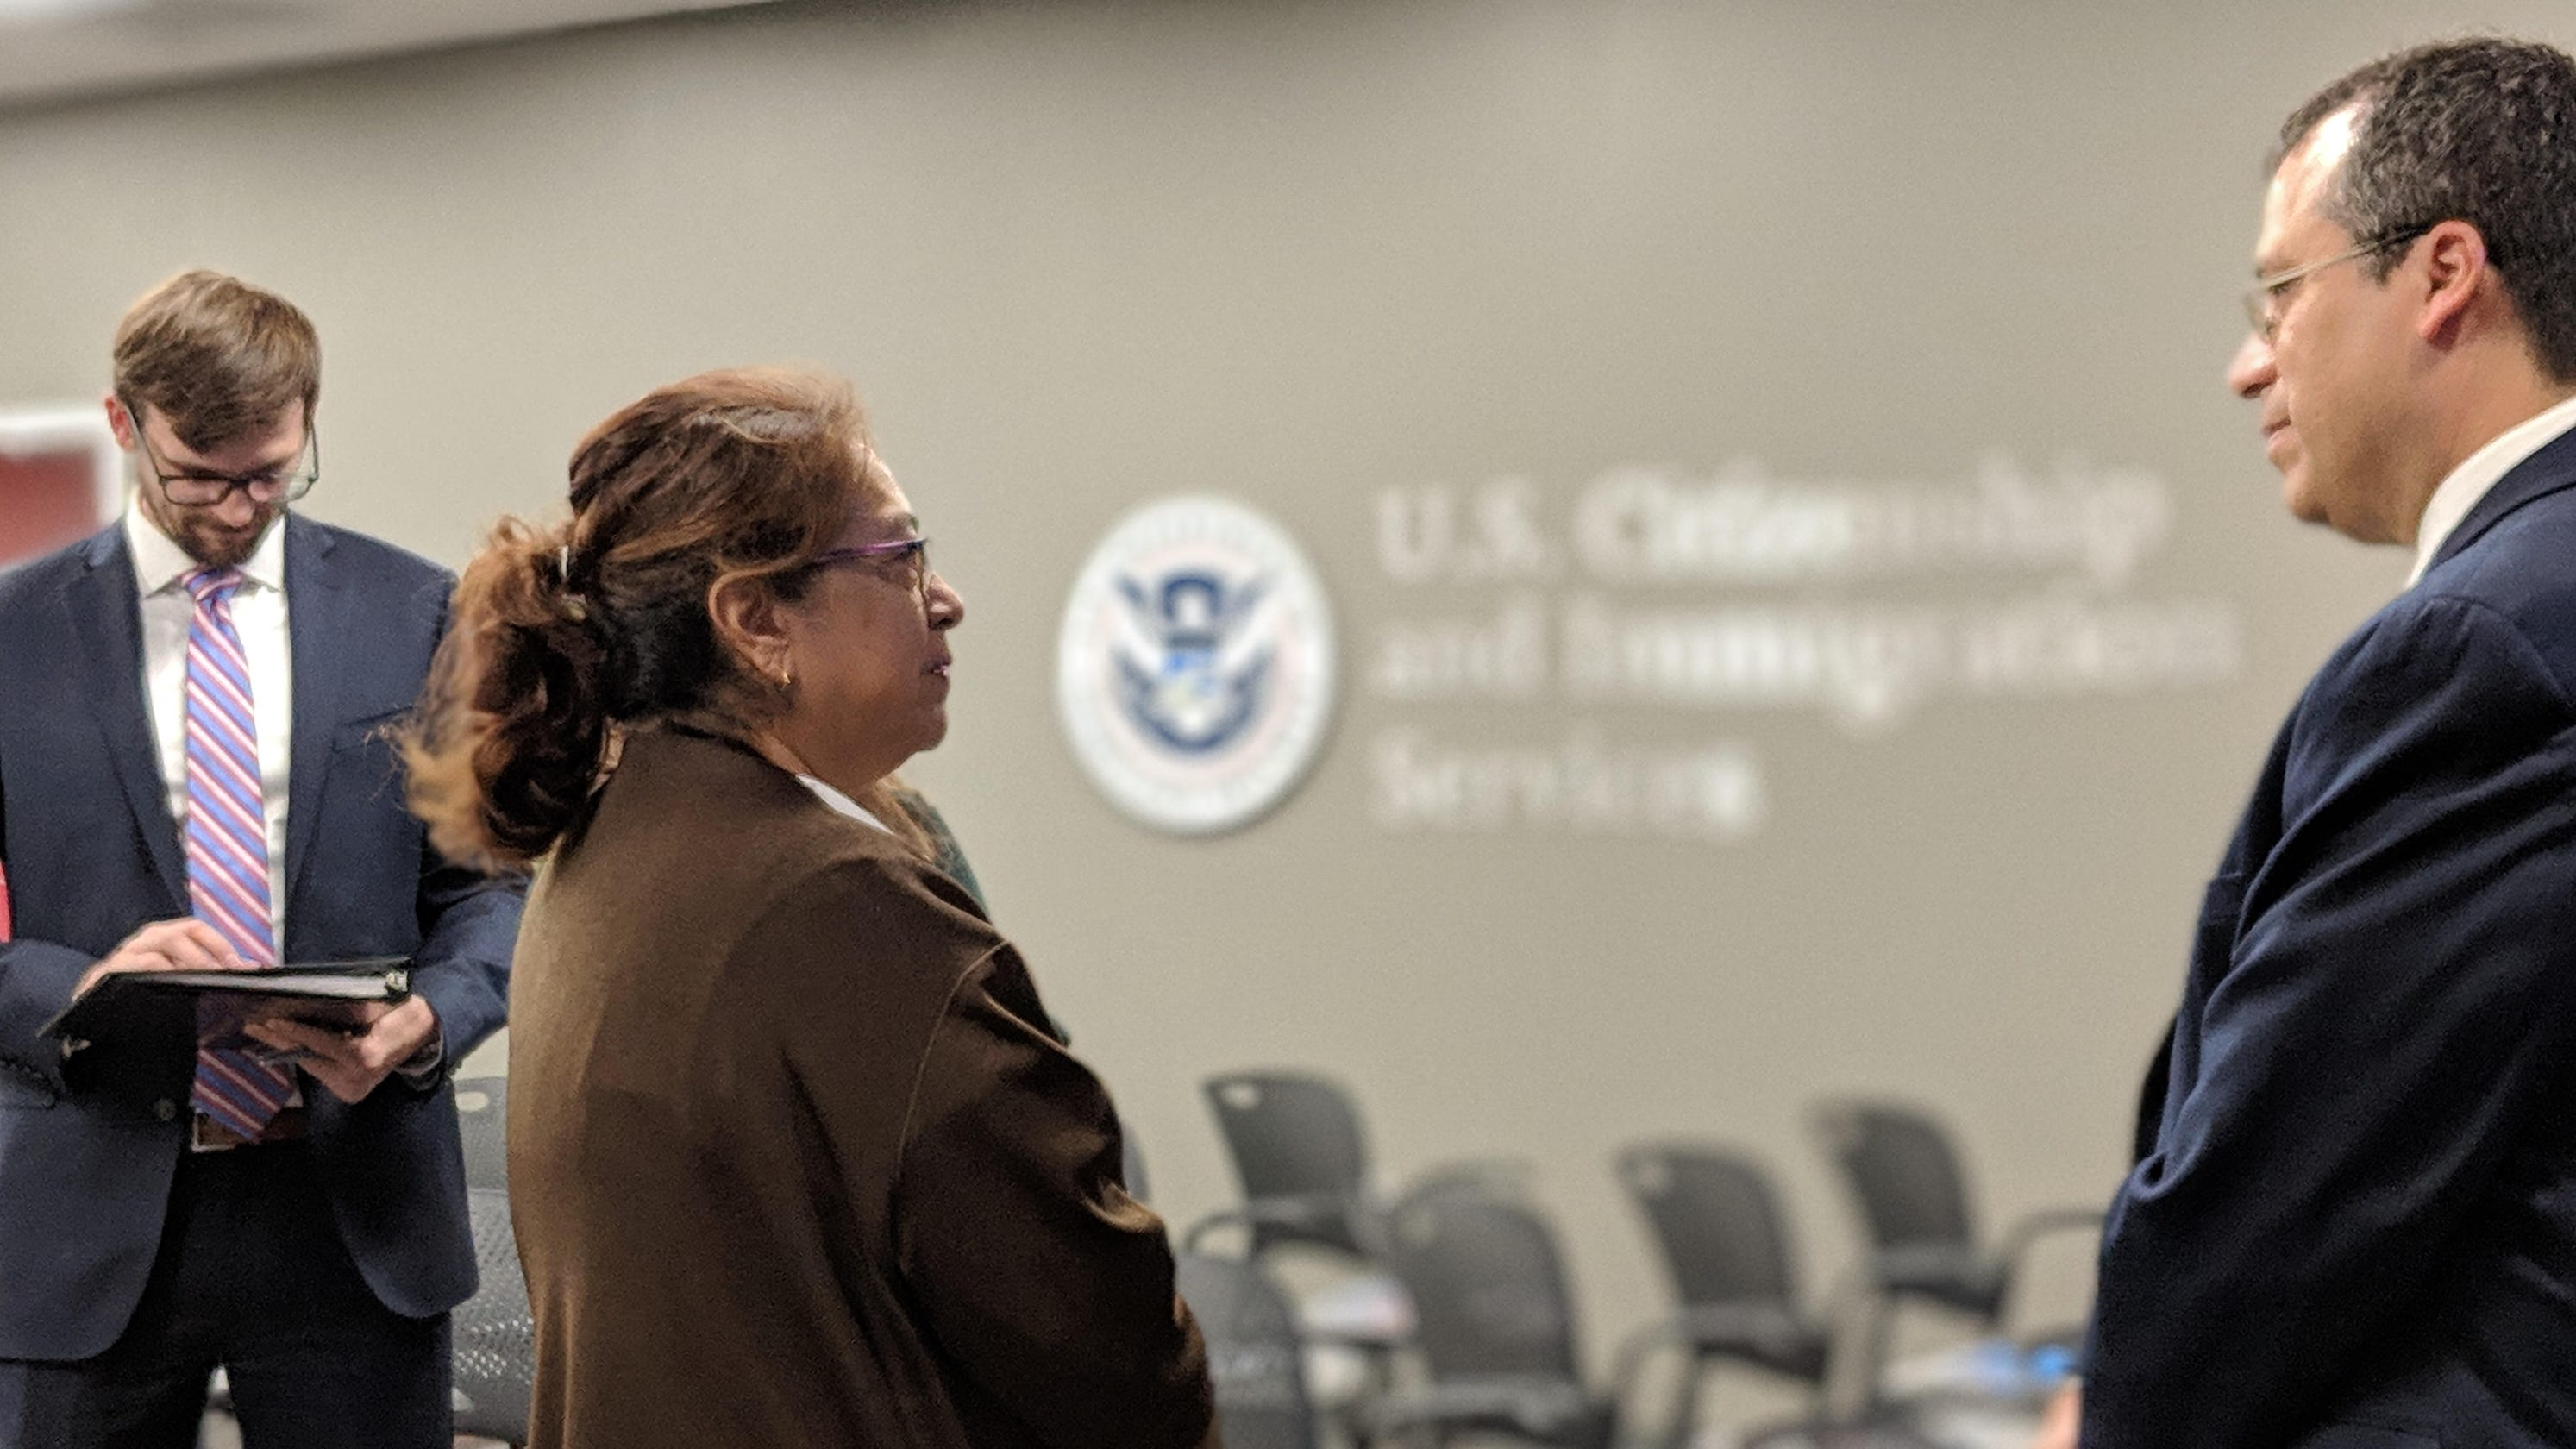 New immigration services office opens in Nashville